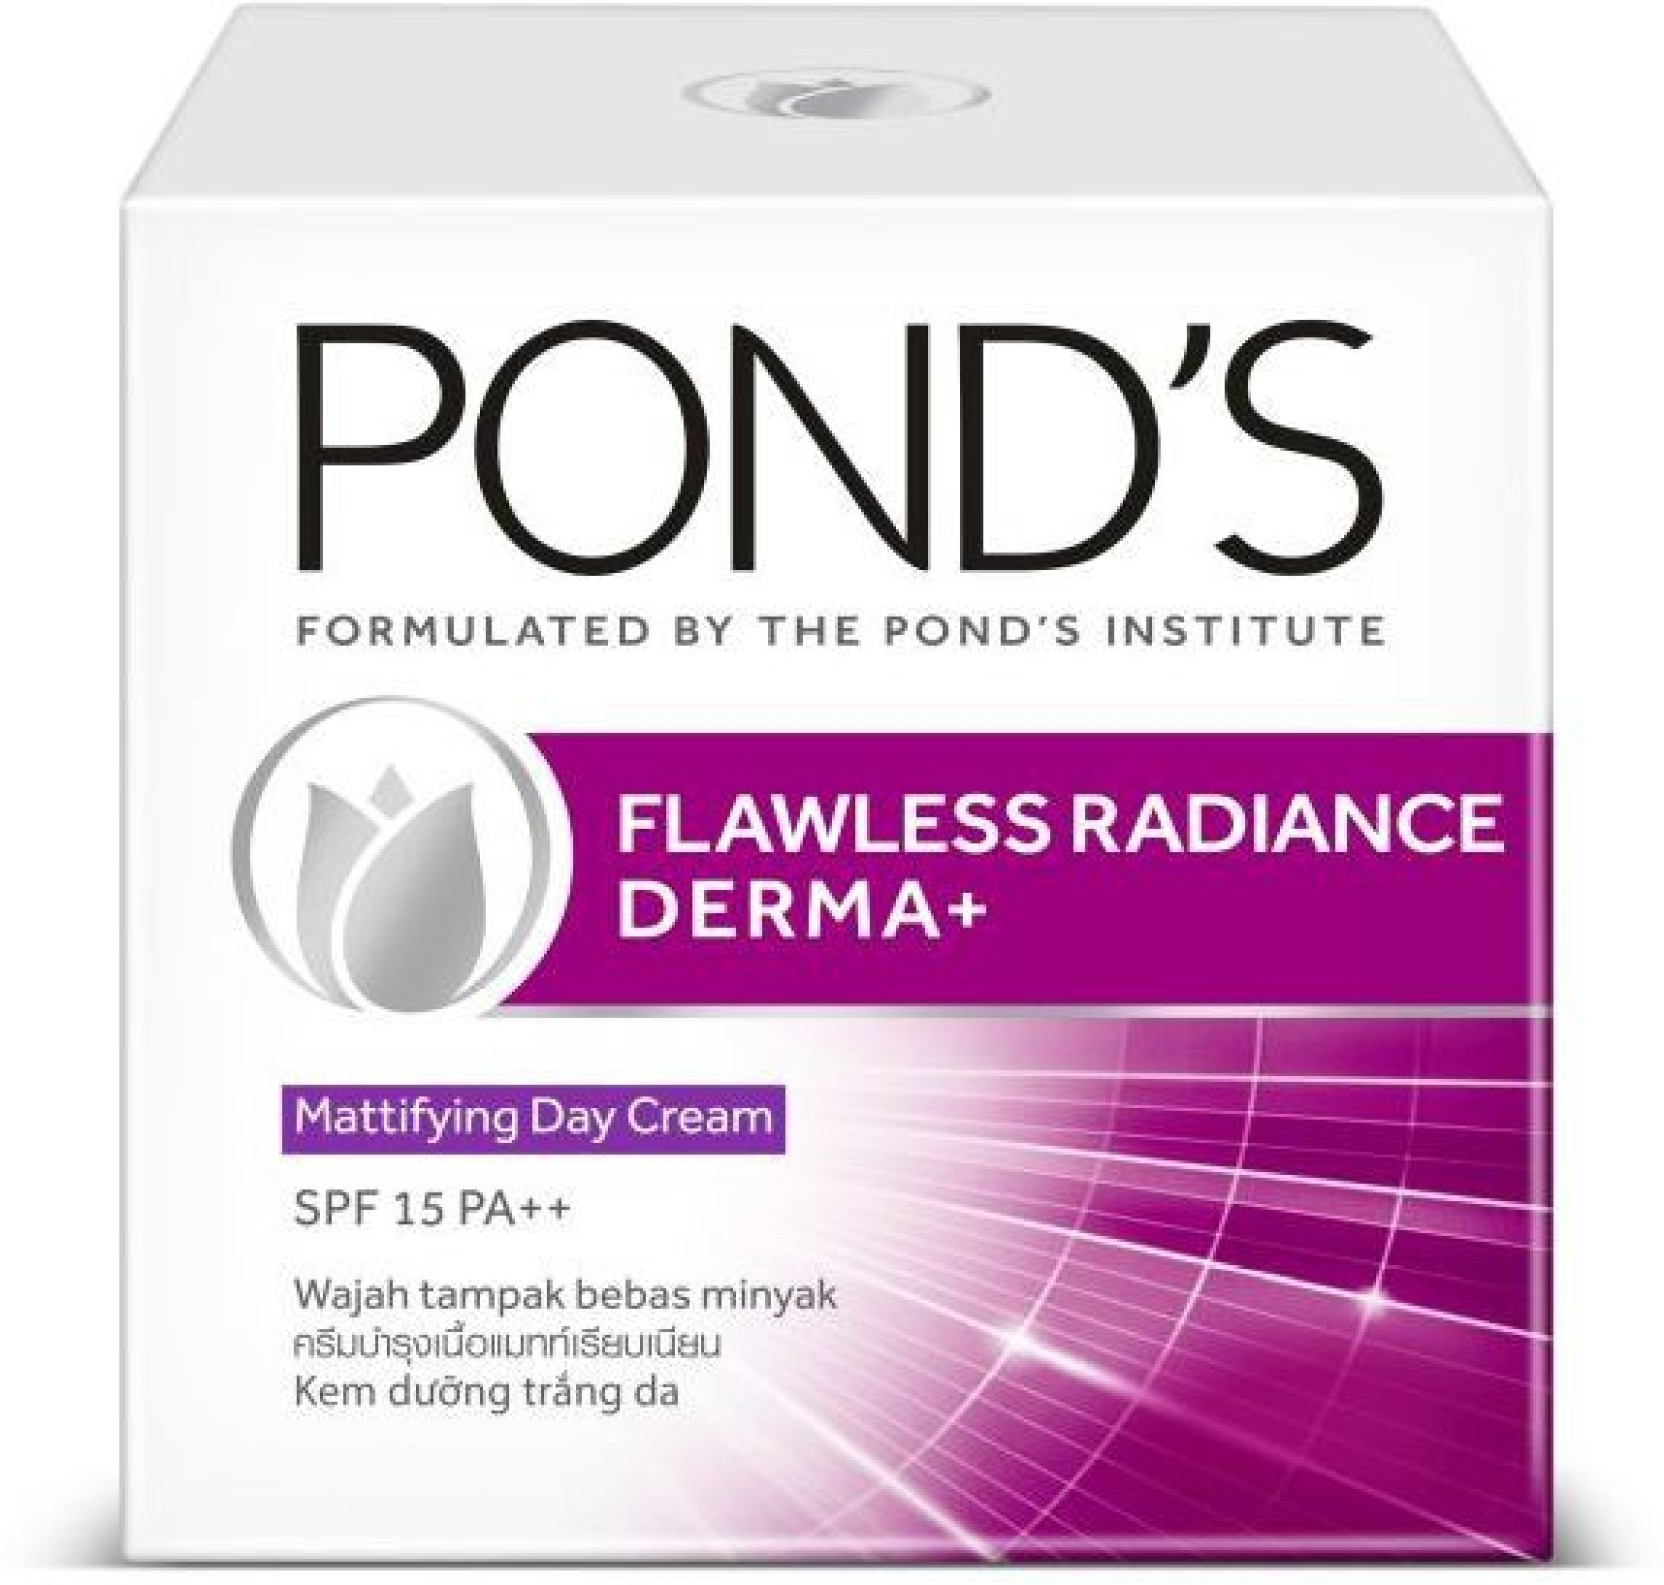 Ponds Flawless Radiance Derma Mattifying Day Cream Price In India Daily Moist 50g Add To Cart